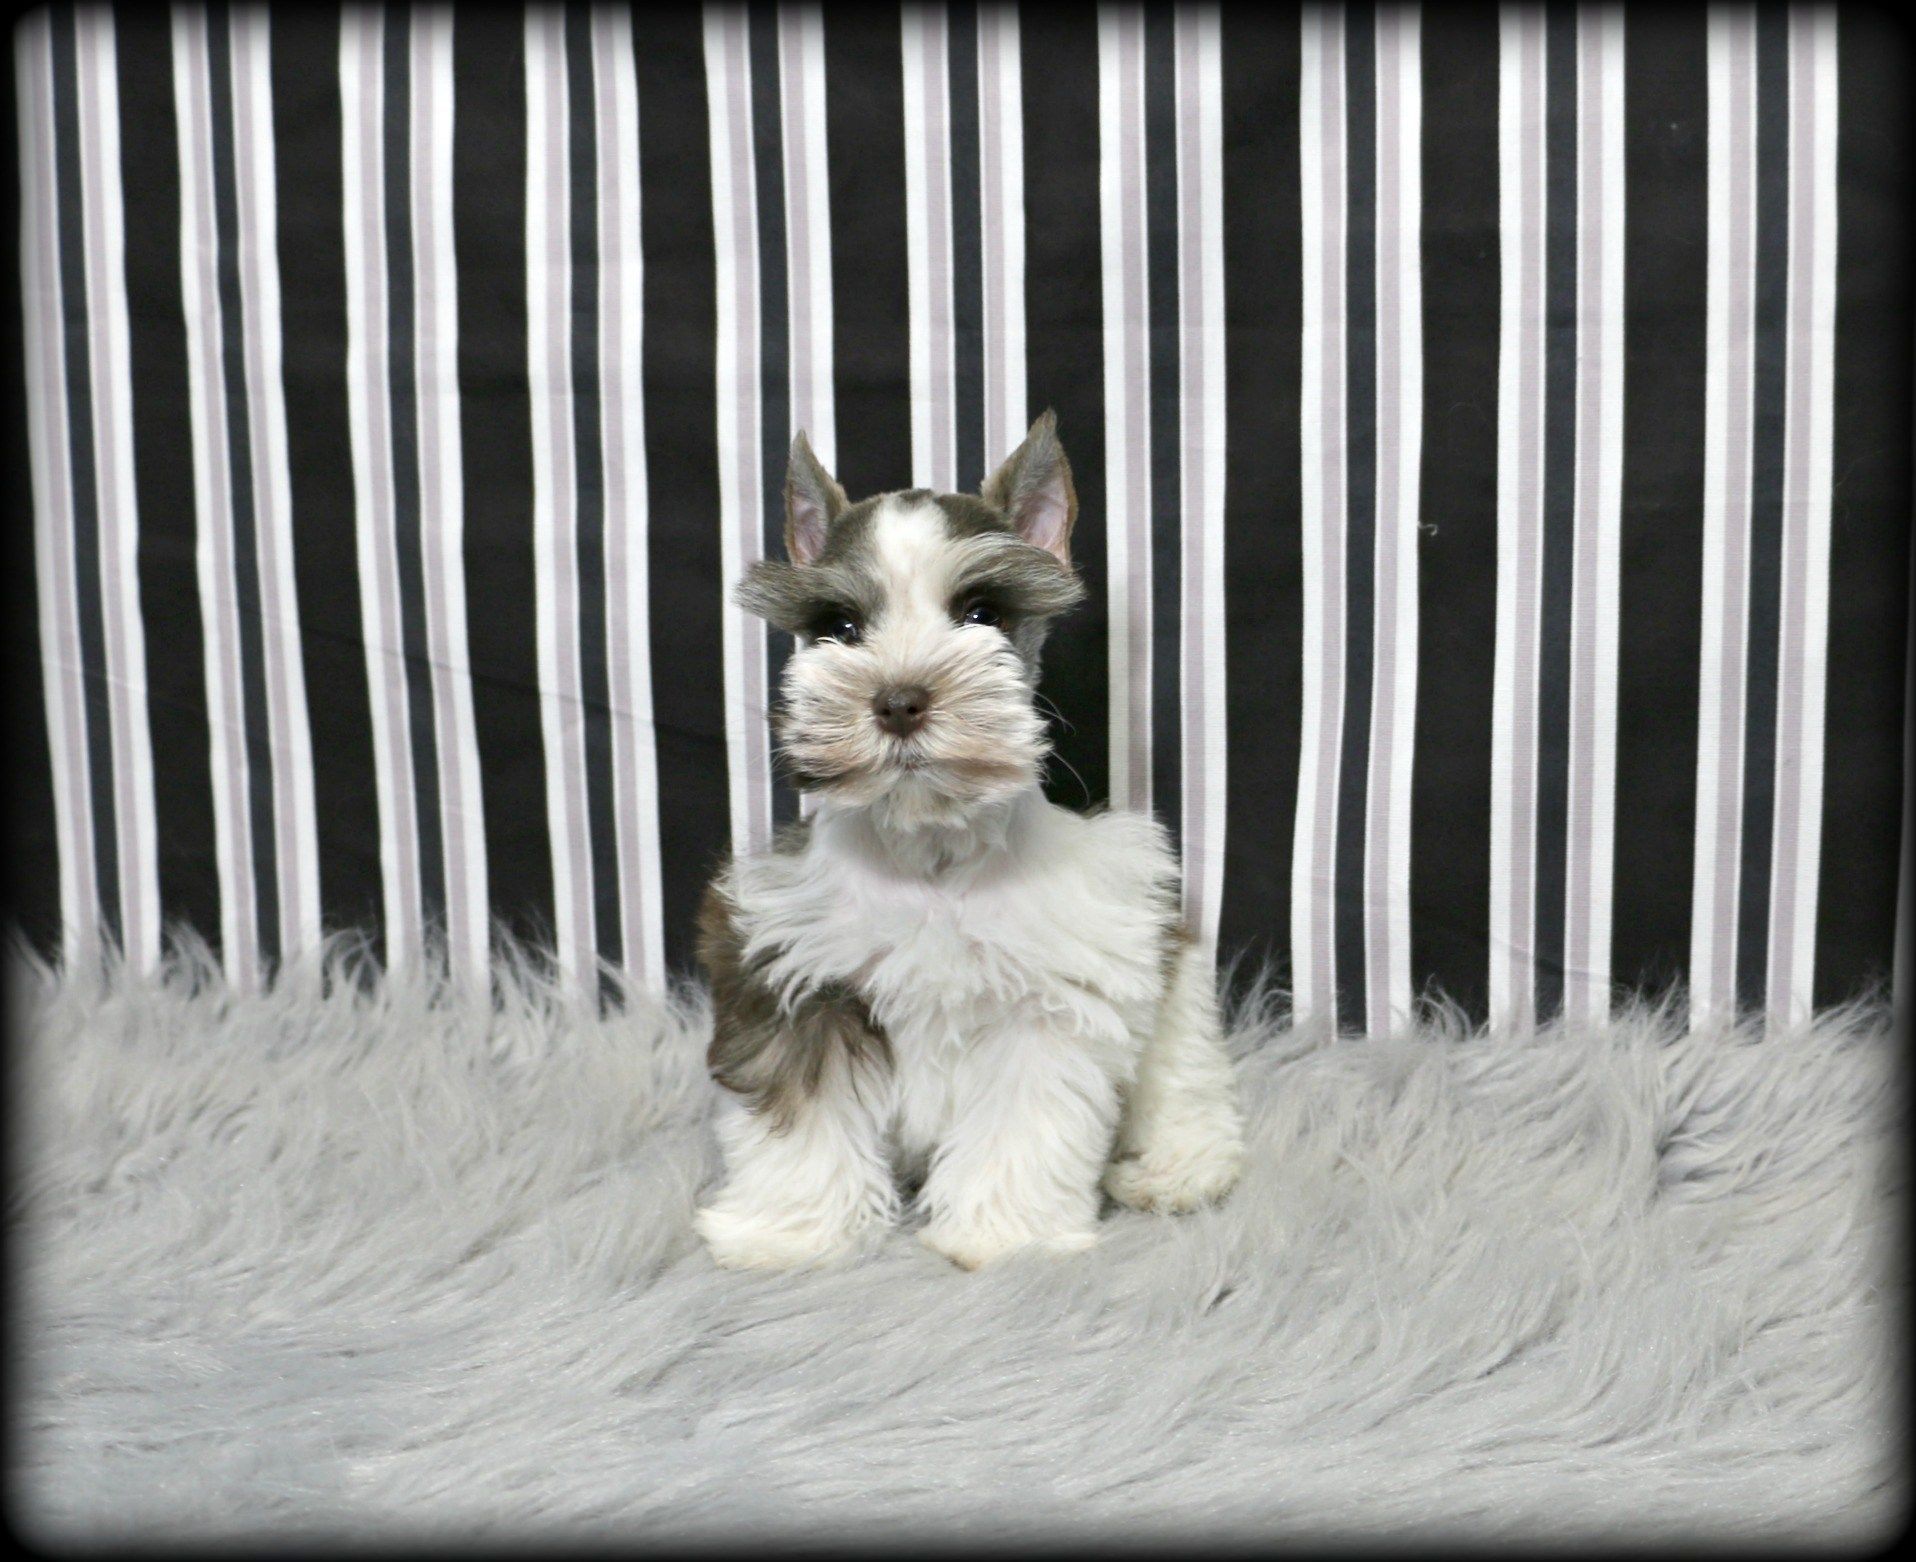 Puppies For Sale Petland In Overland Park Kansas City Puppies For Sale Puppy Friends Puppies